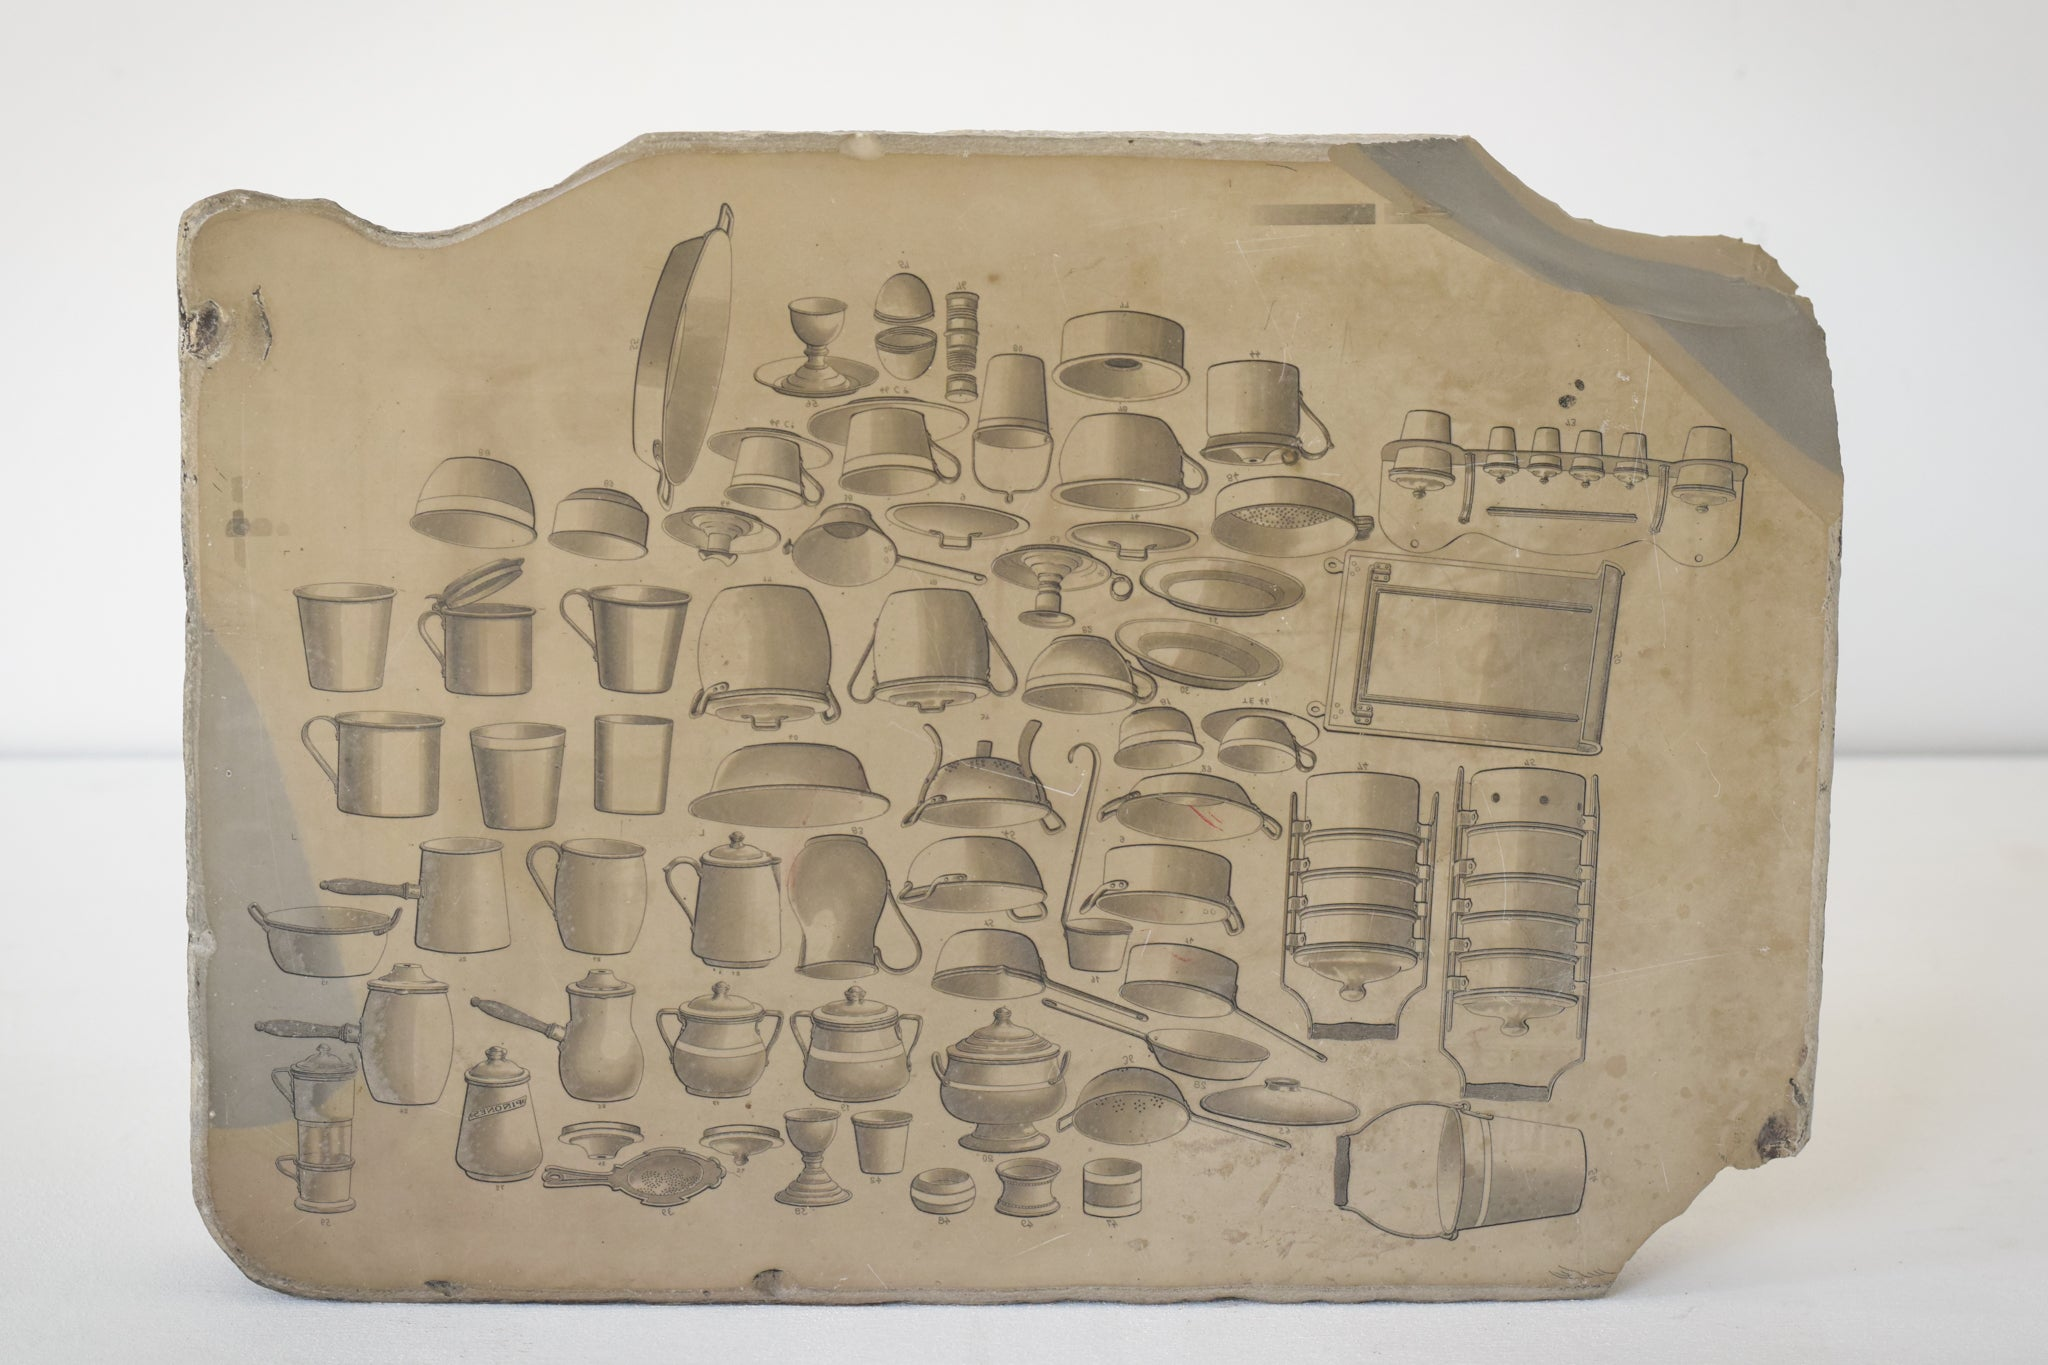 Lithographic Stone with drawings of Culinary Utensils as a design